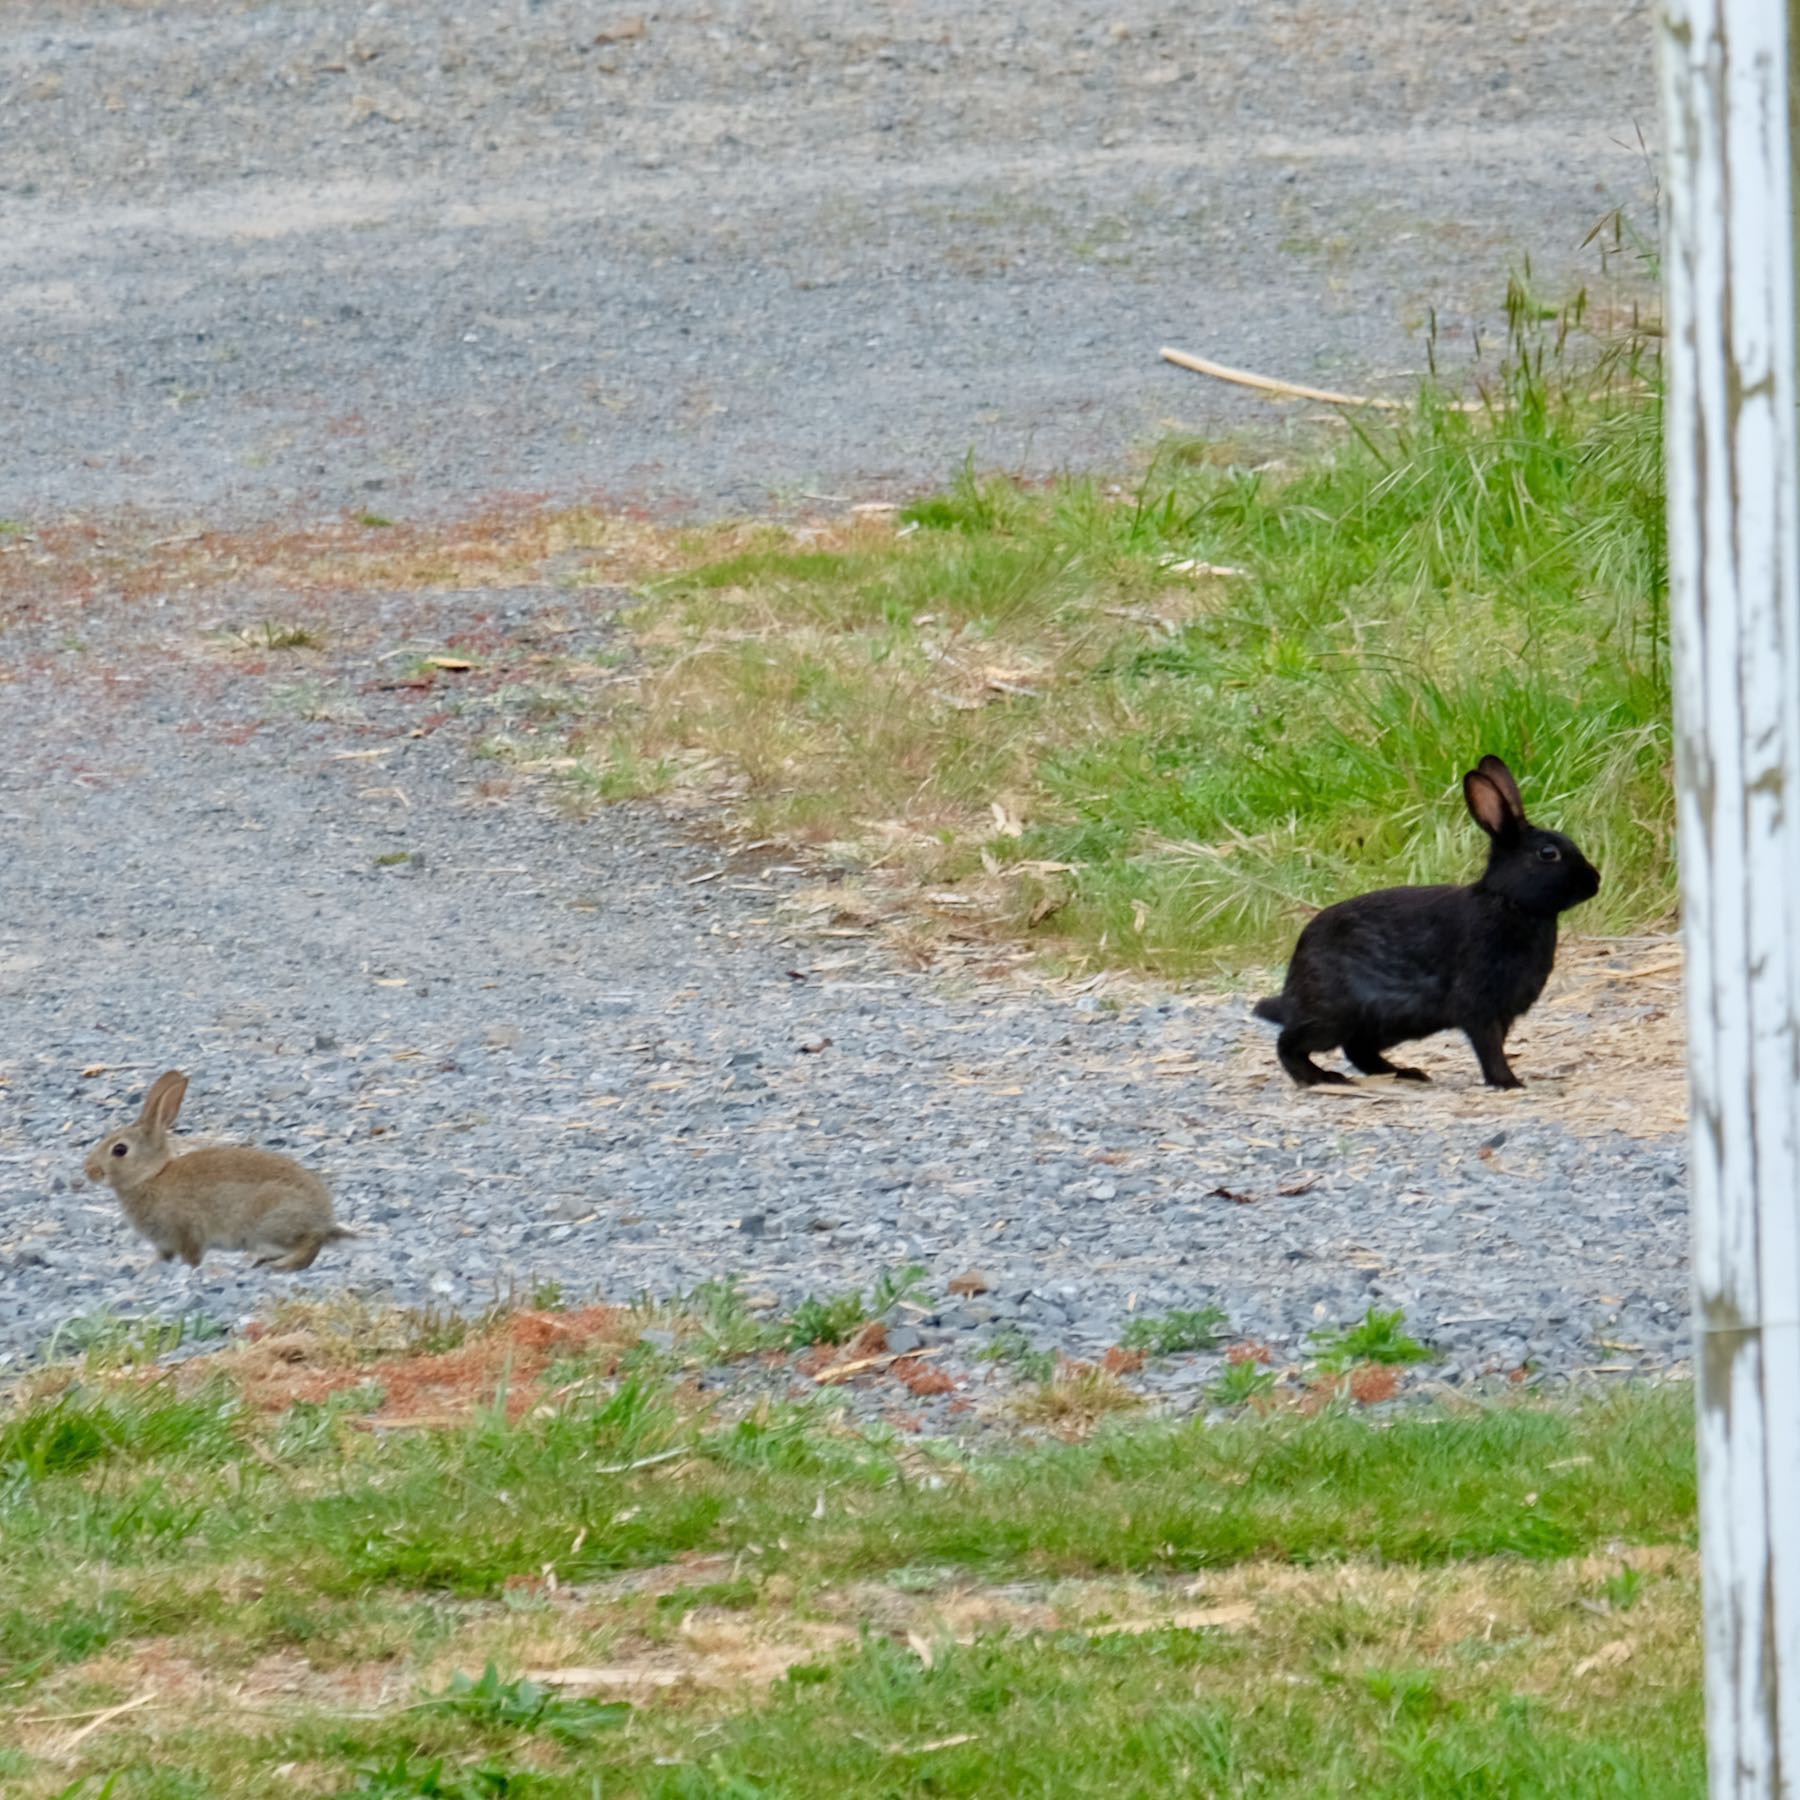 Brown baby rabbit and adult black rabbit going in opposite directions.